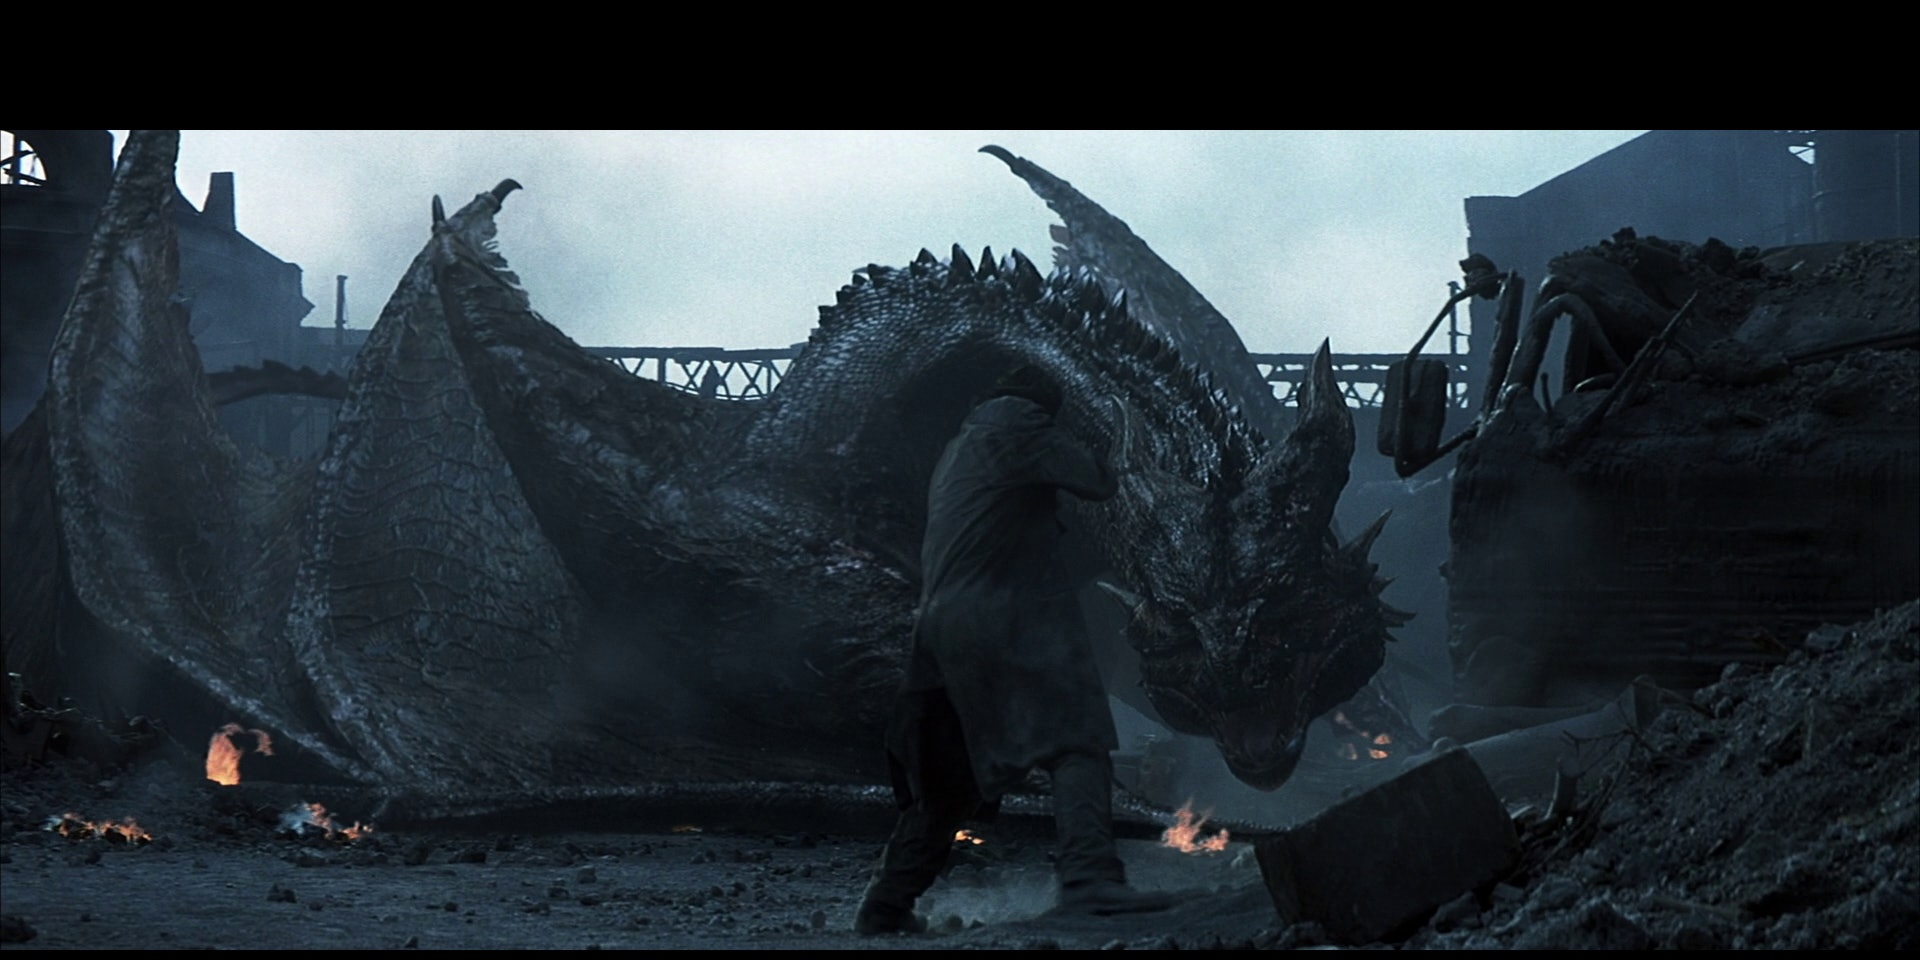 A scene from the epic showdown between man and dragon in Reign of Fire.